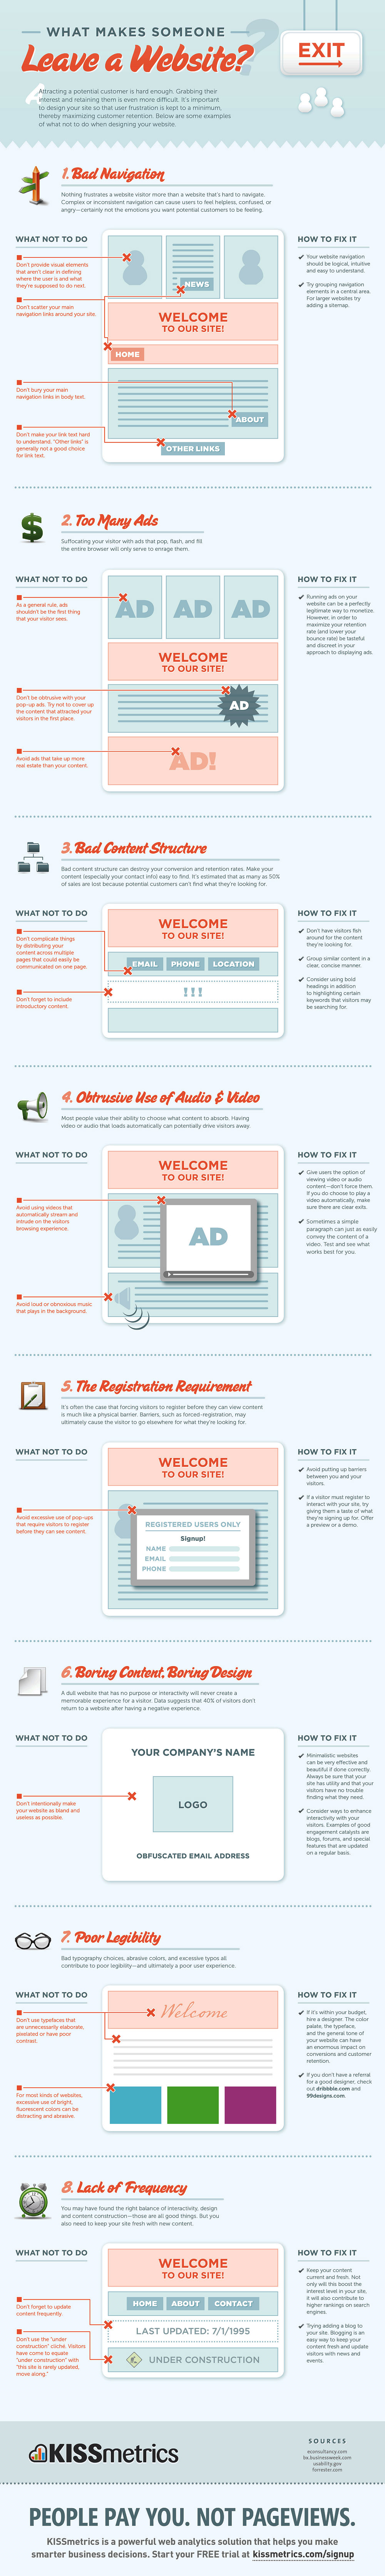 reduce-bounce-rate-web-design-navigation-content-infographic